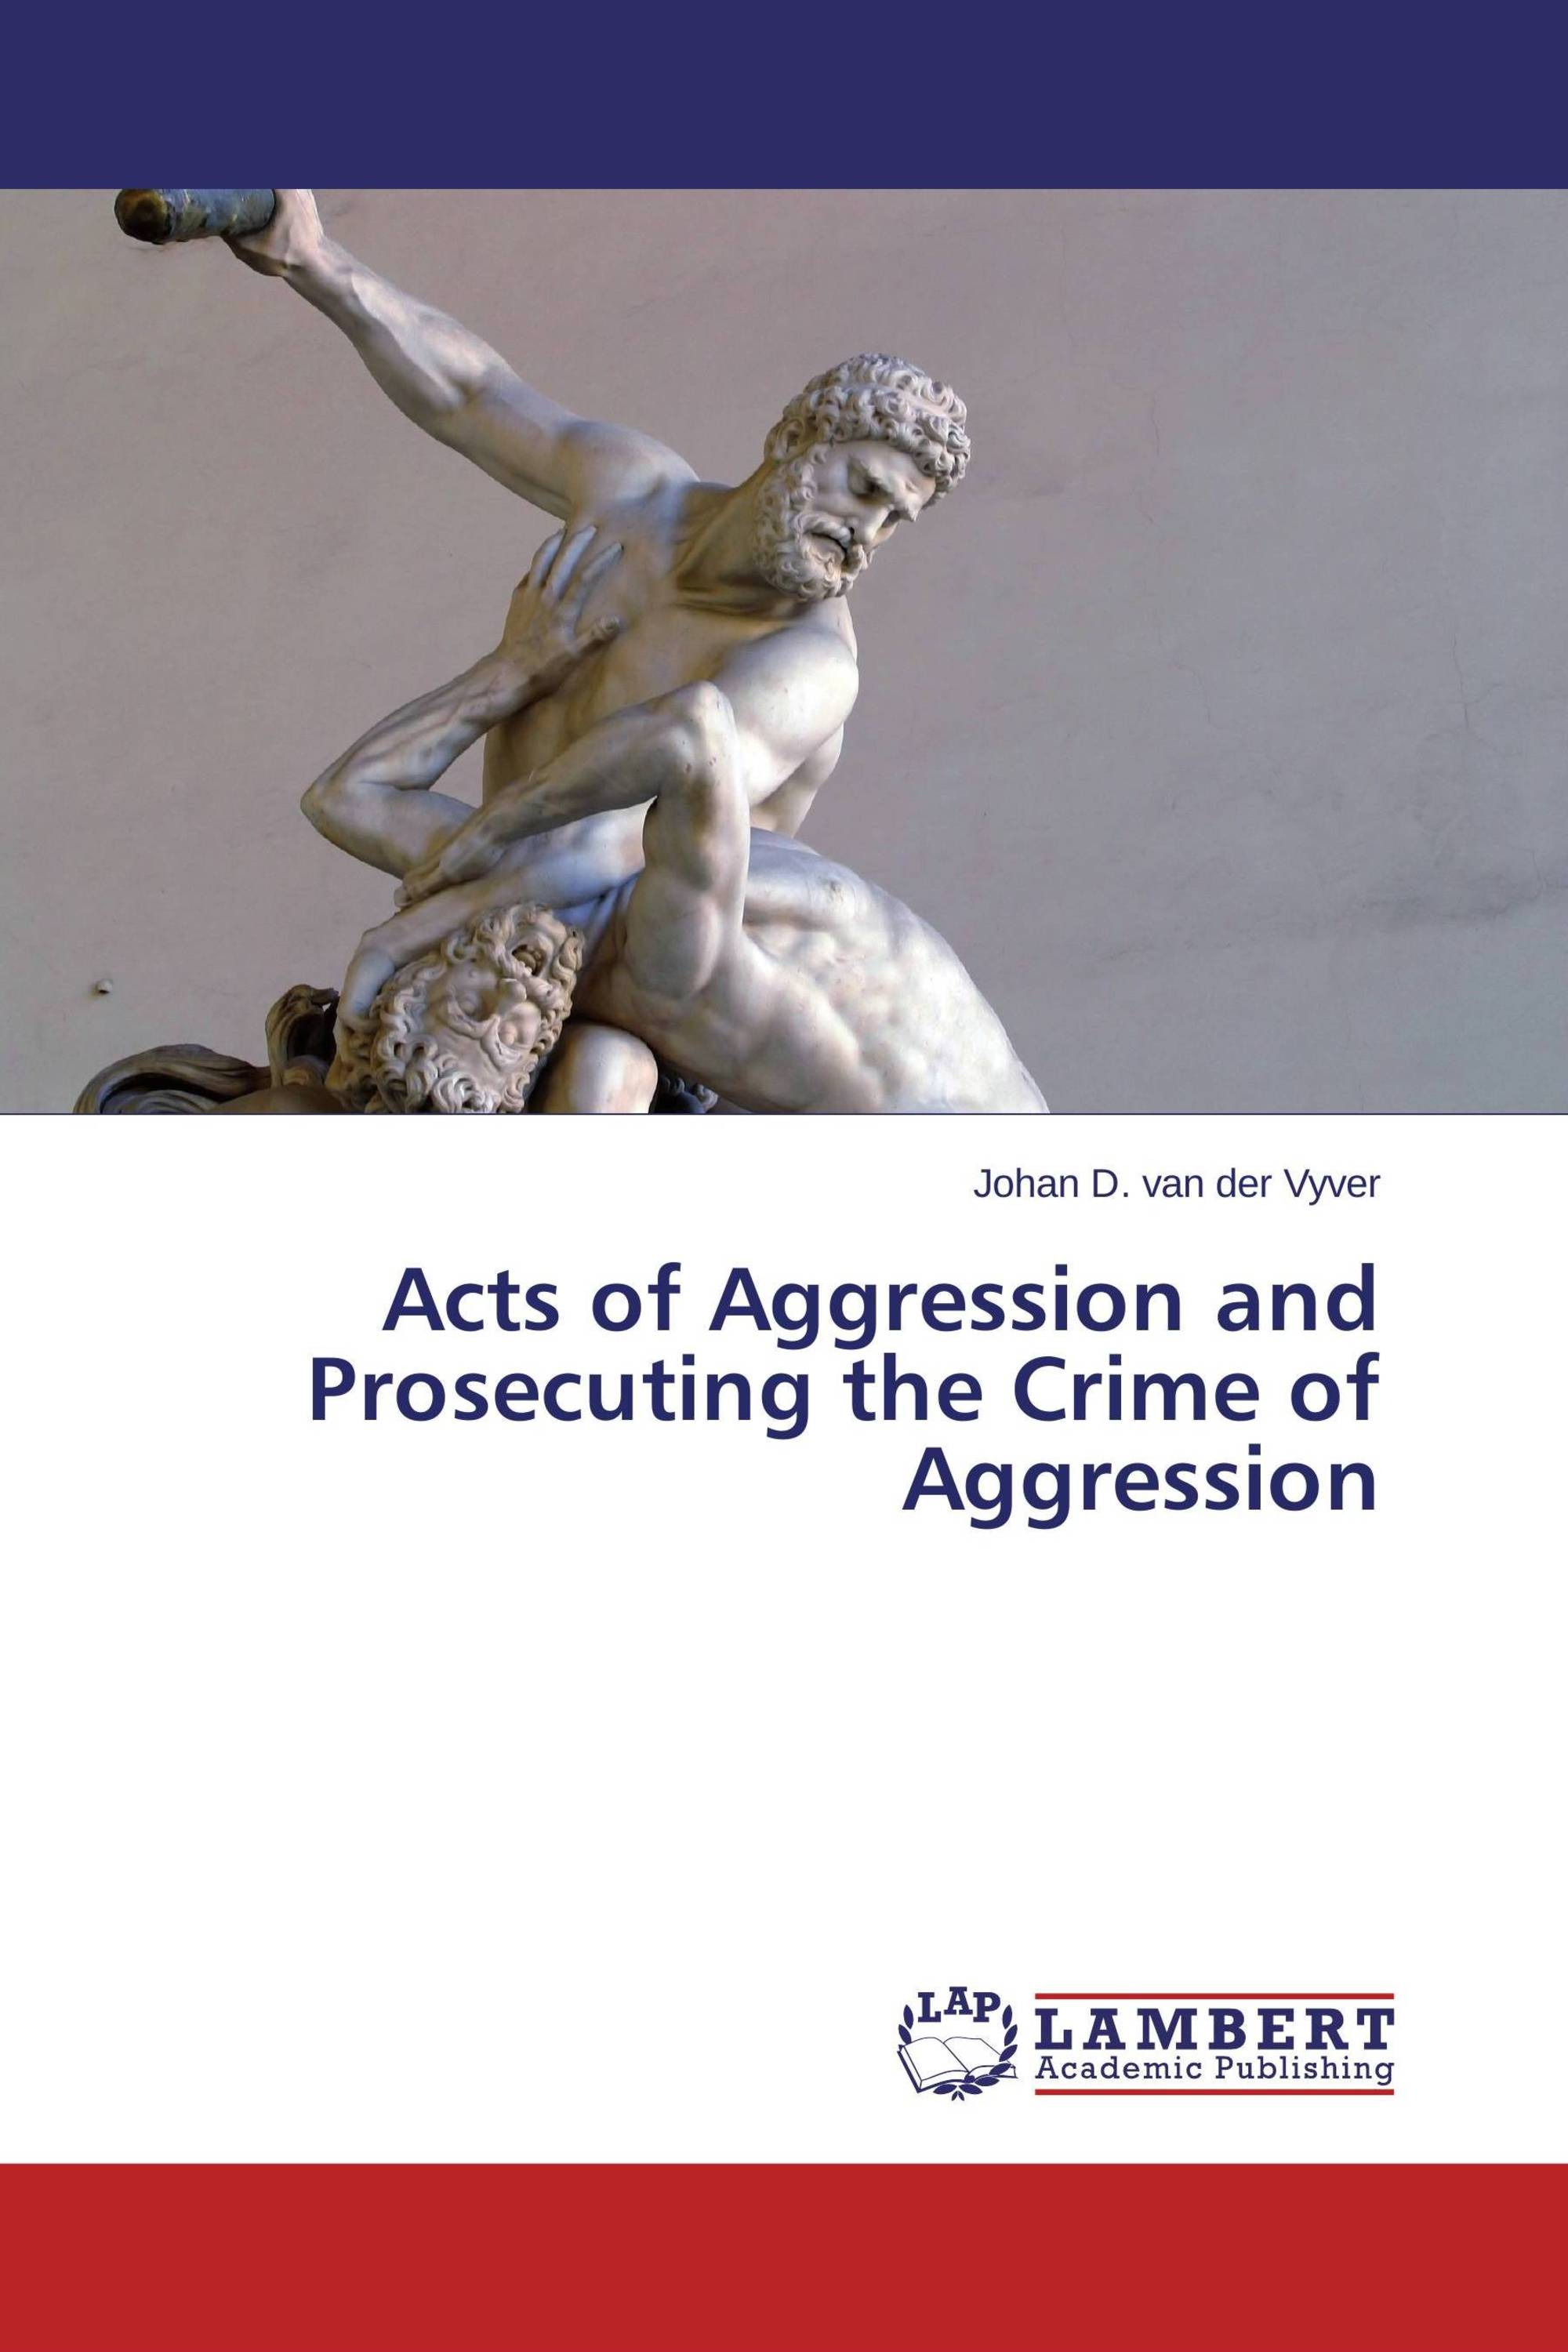 Acts of Aggression and Prosecuting the Crime of Aggression